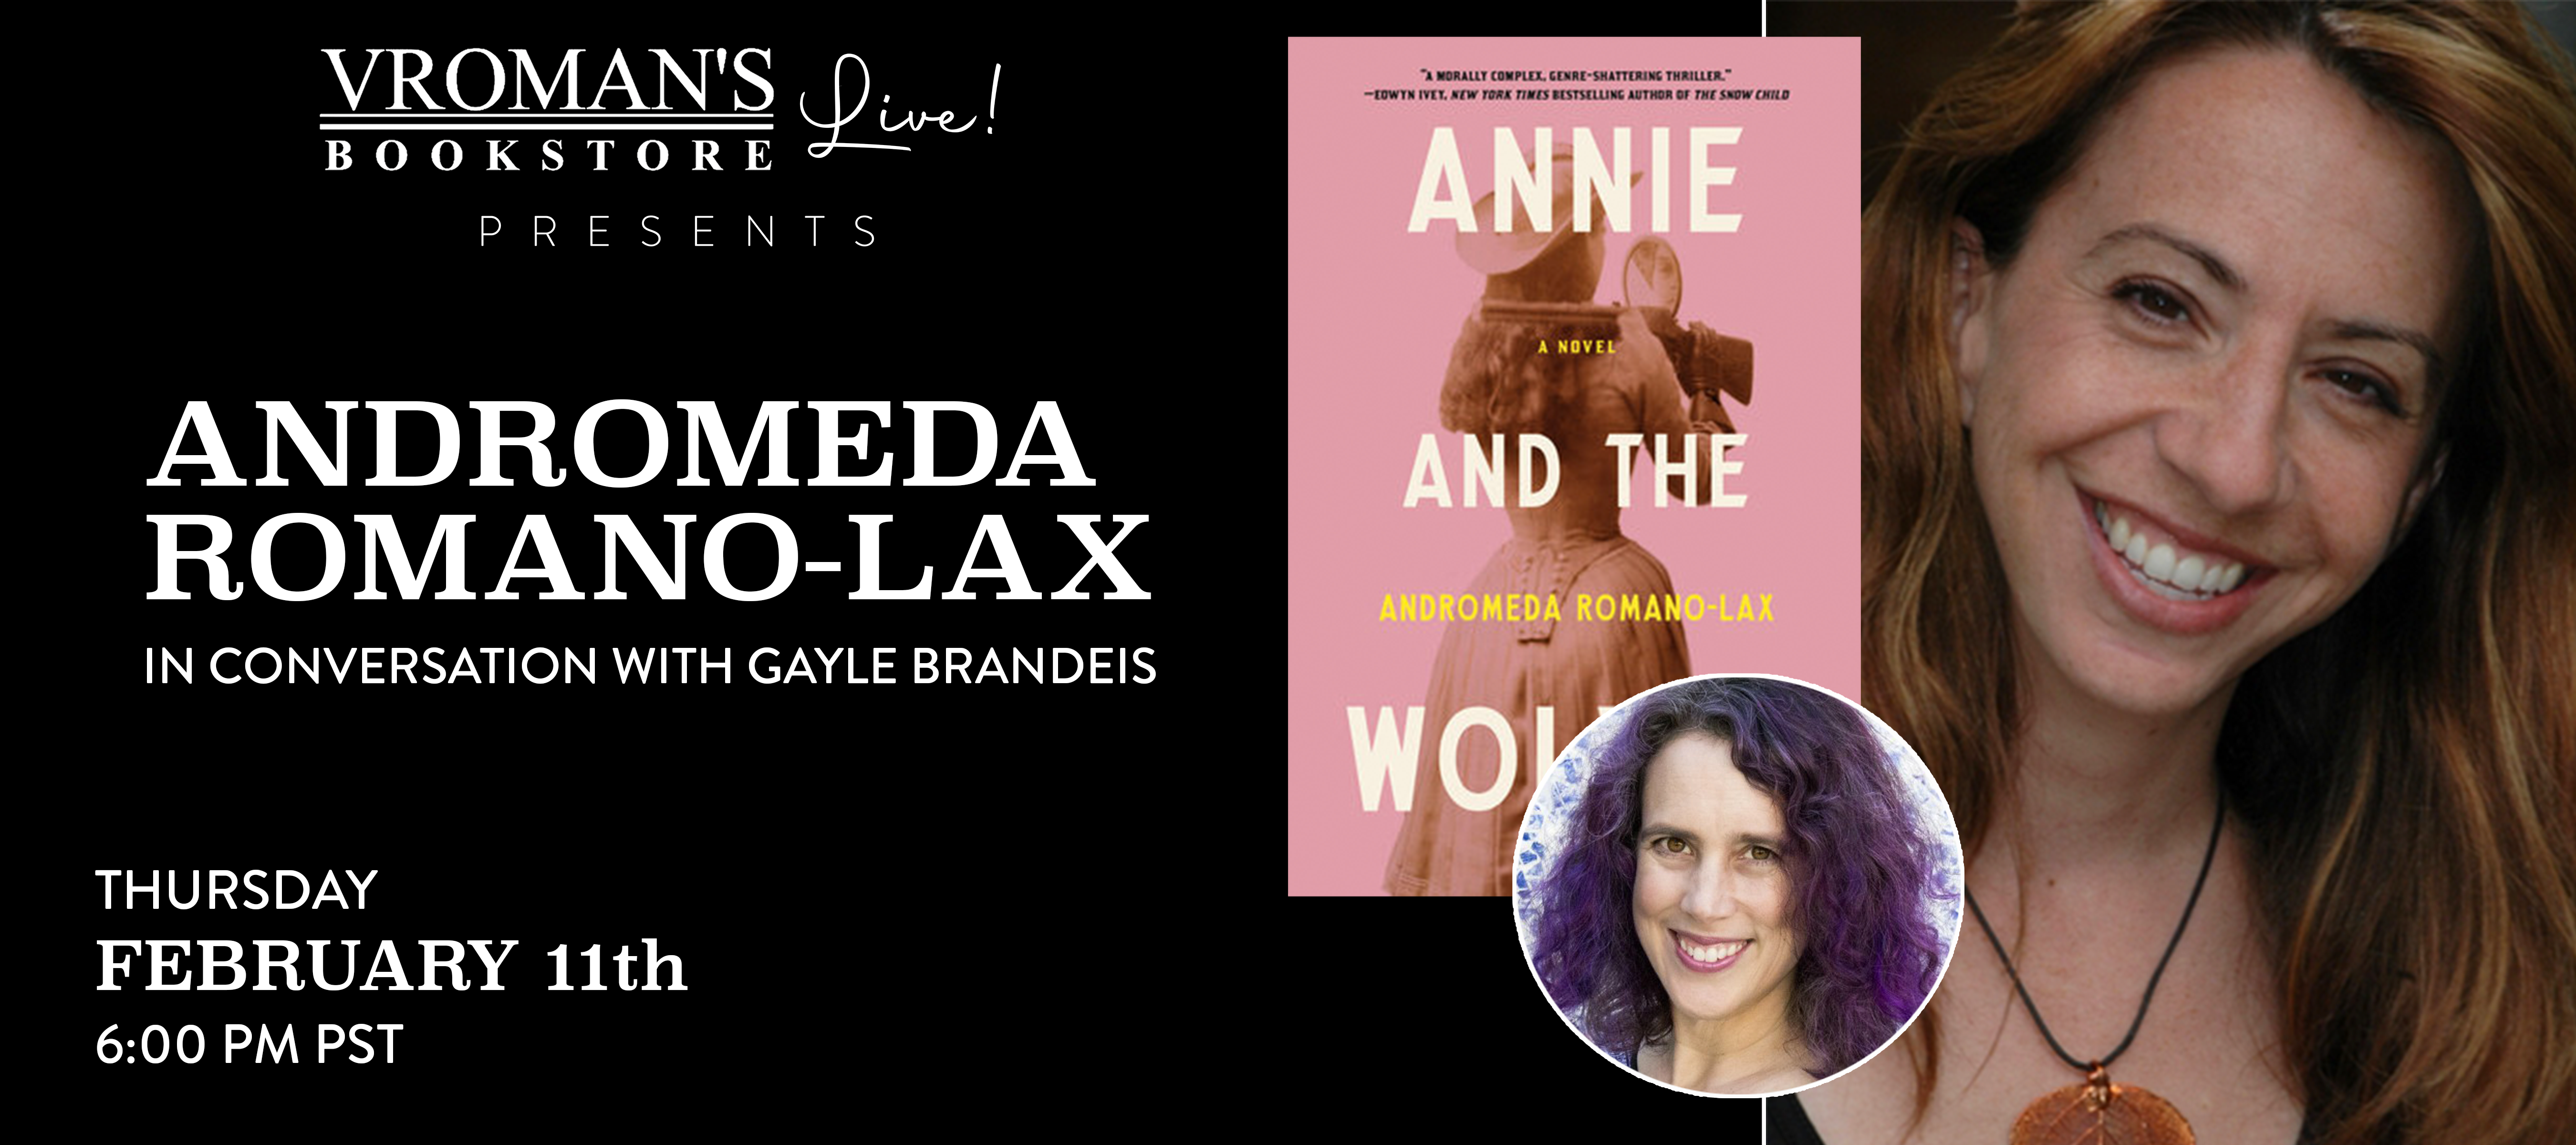 Andromeda Romano-Lax, in conversation with Gayle Brandeis on Thursday February 11 at 6pm